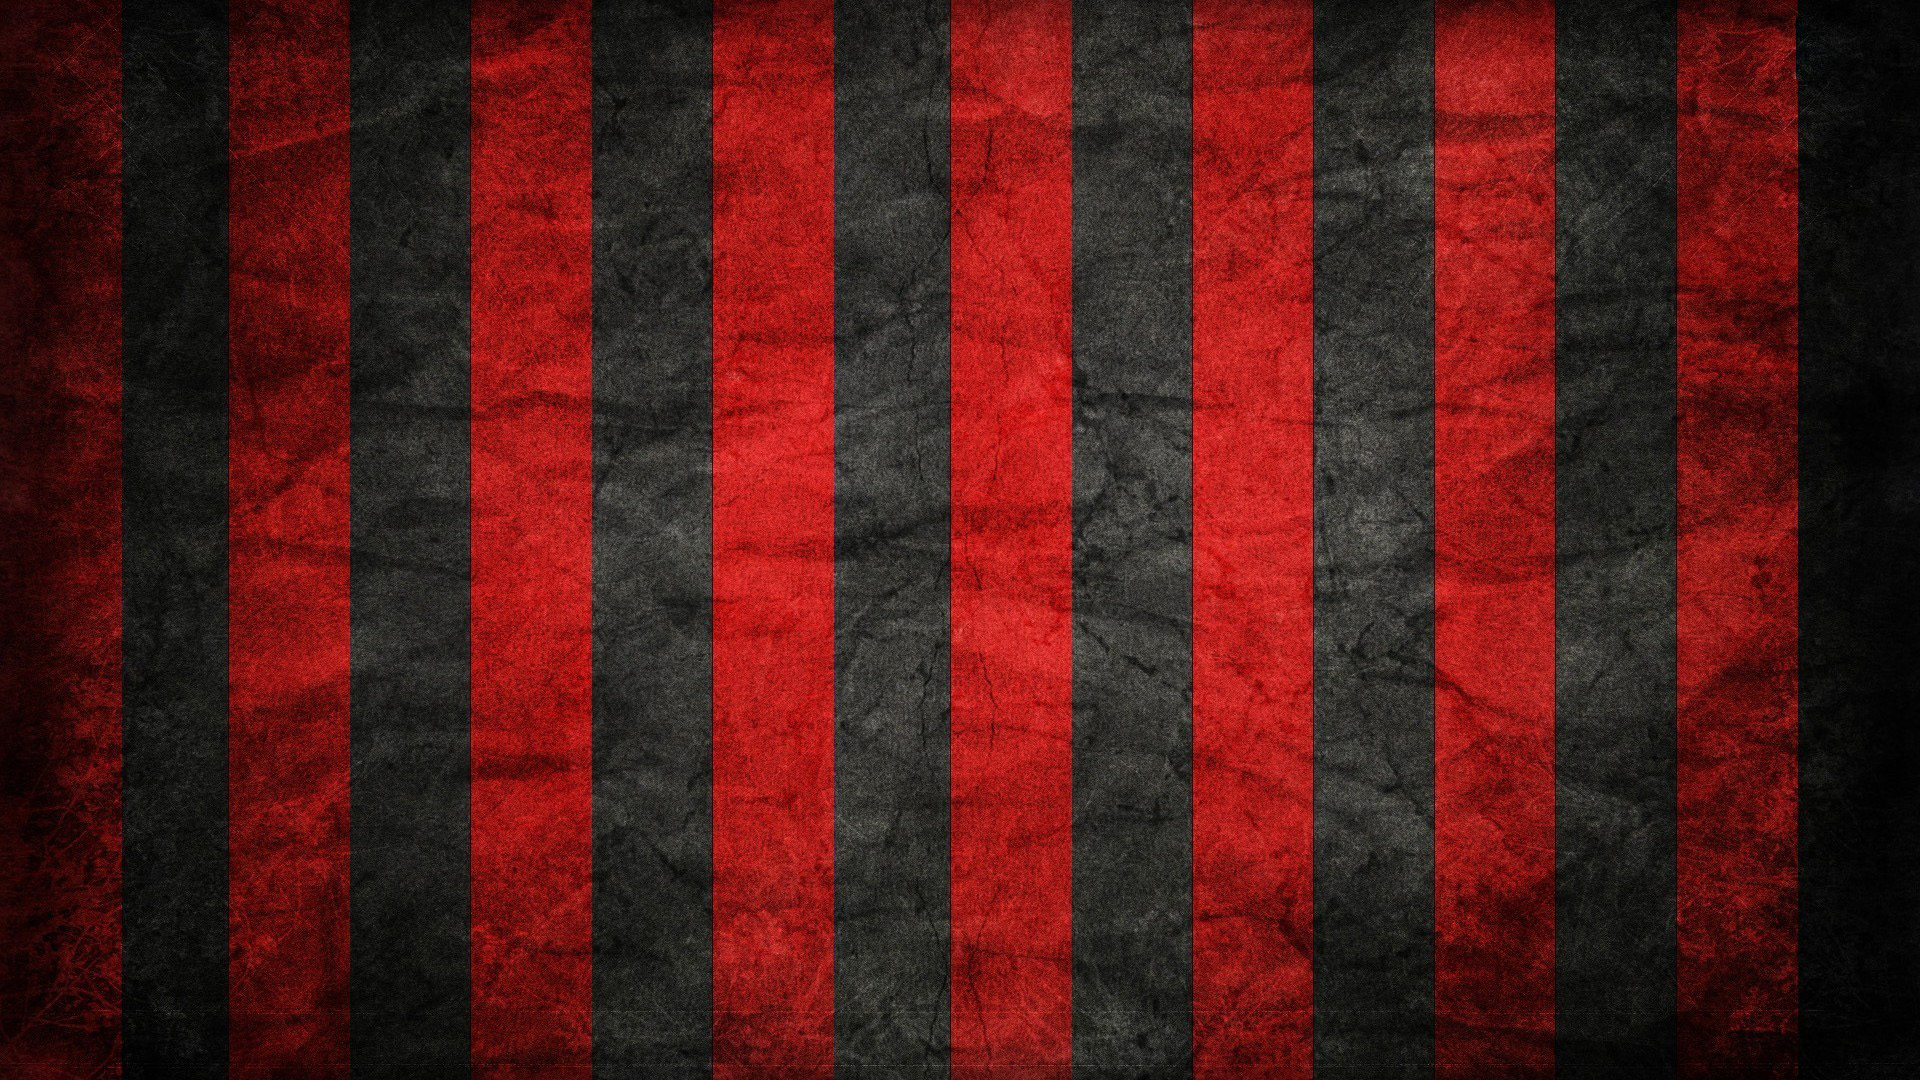 black and red wallpaper hd | pixelstalk